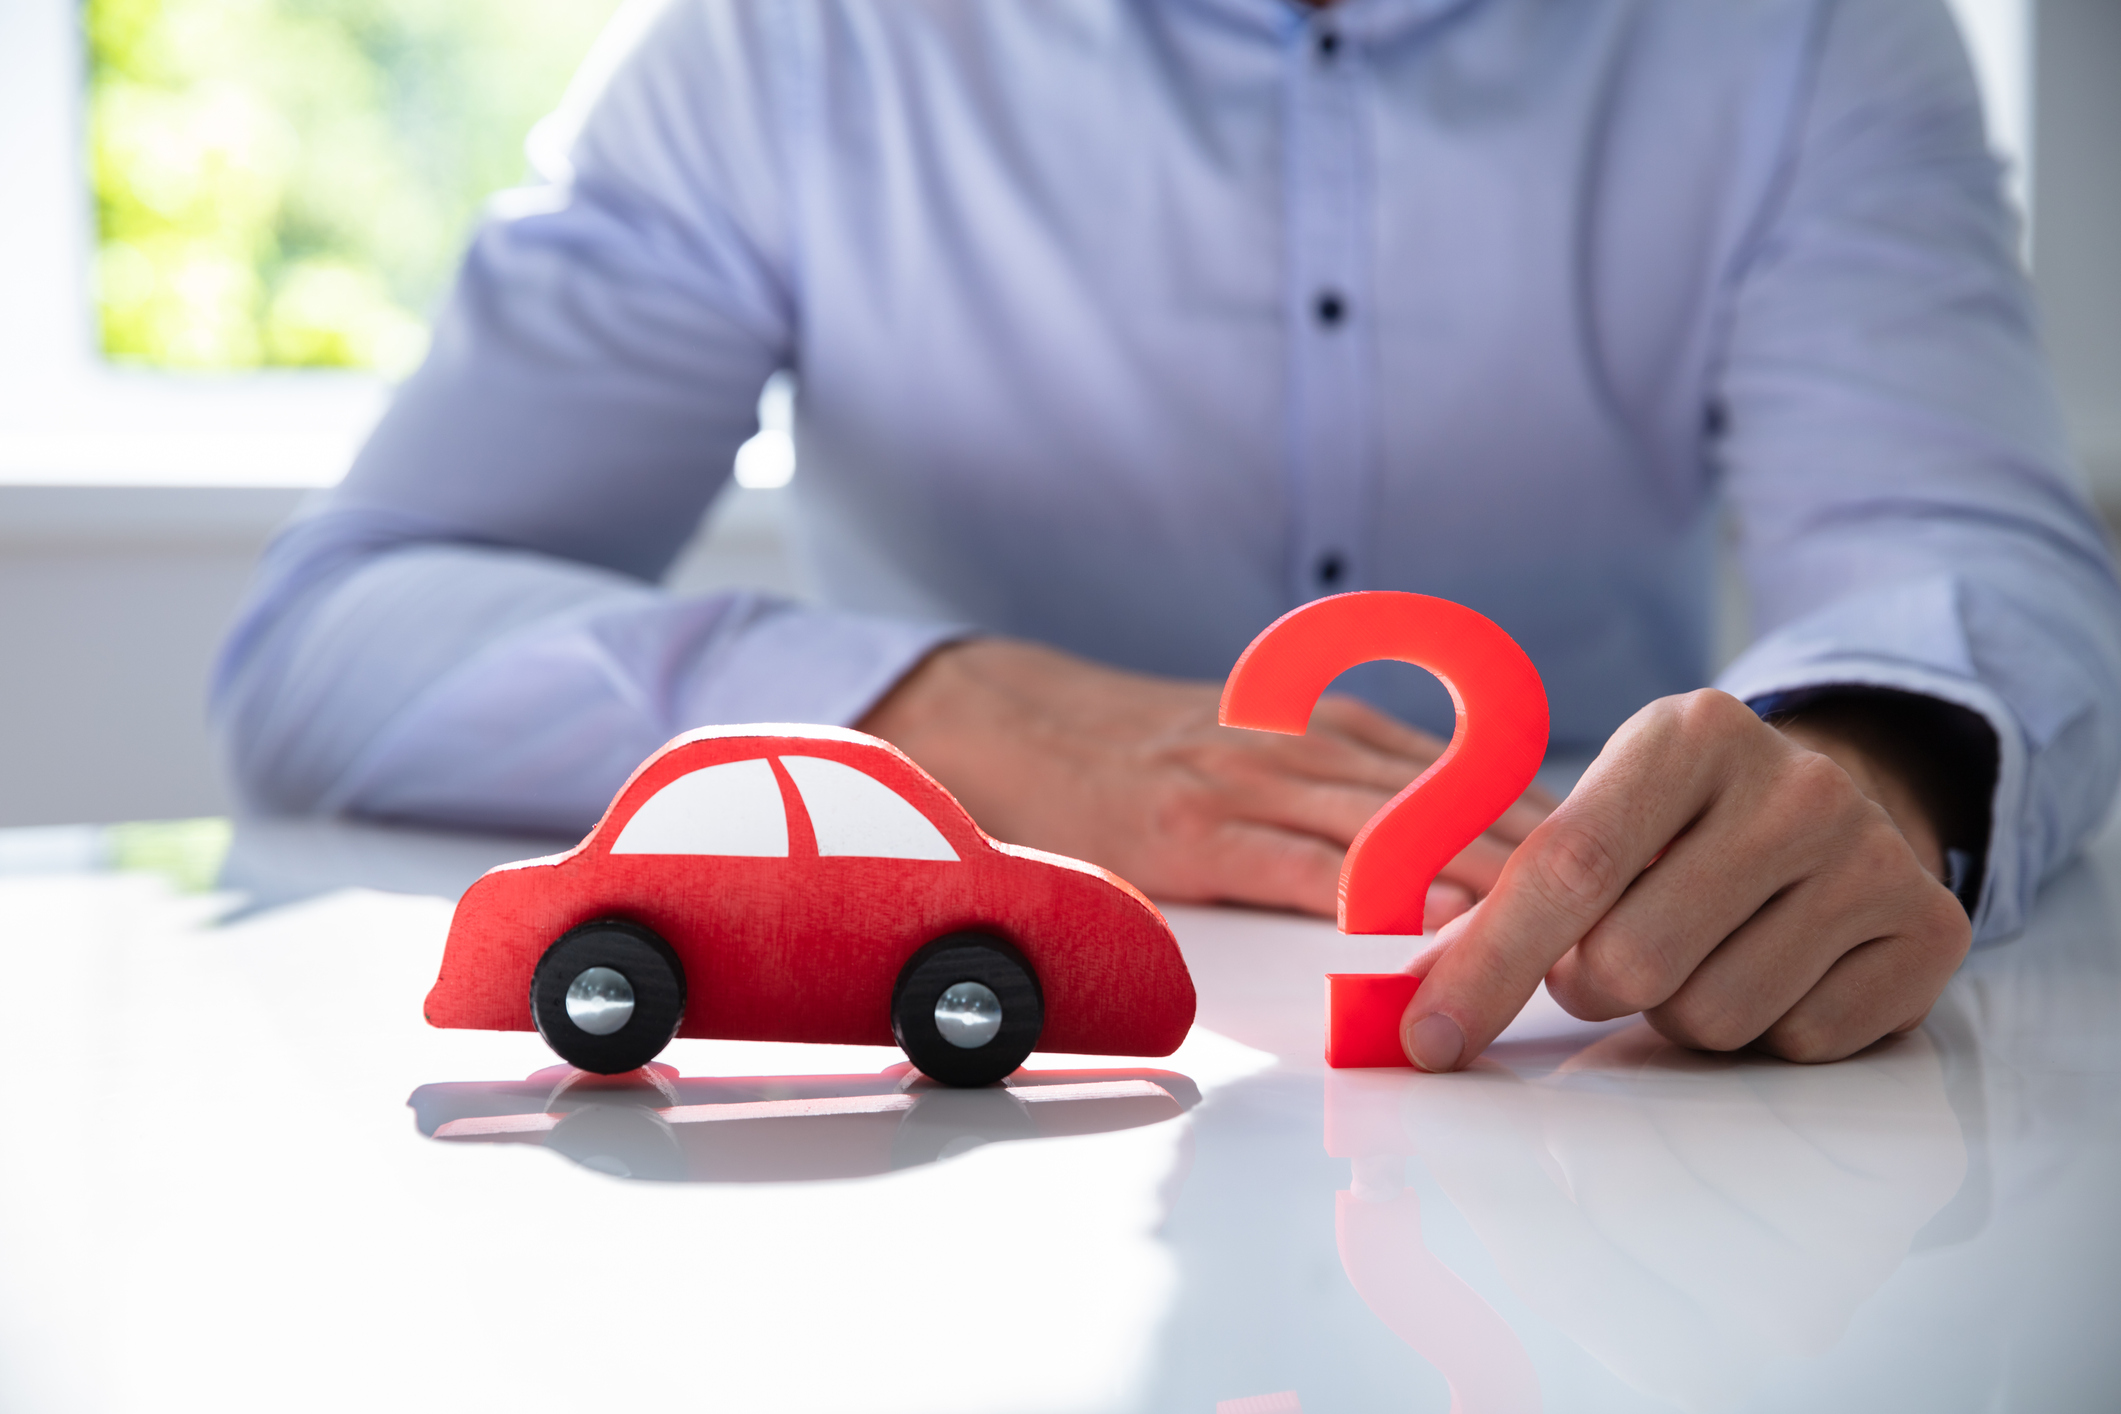 Man holding a wooden car and a question mark